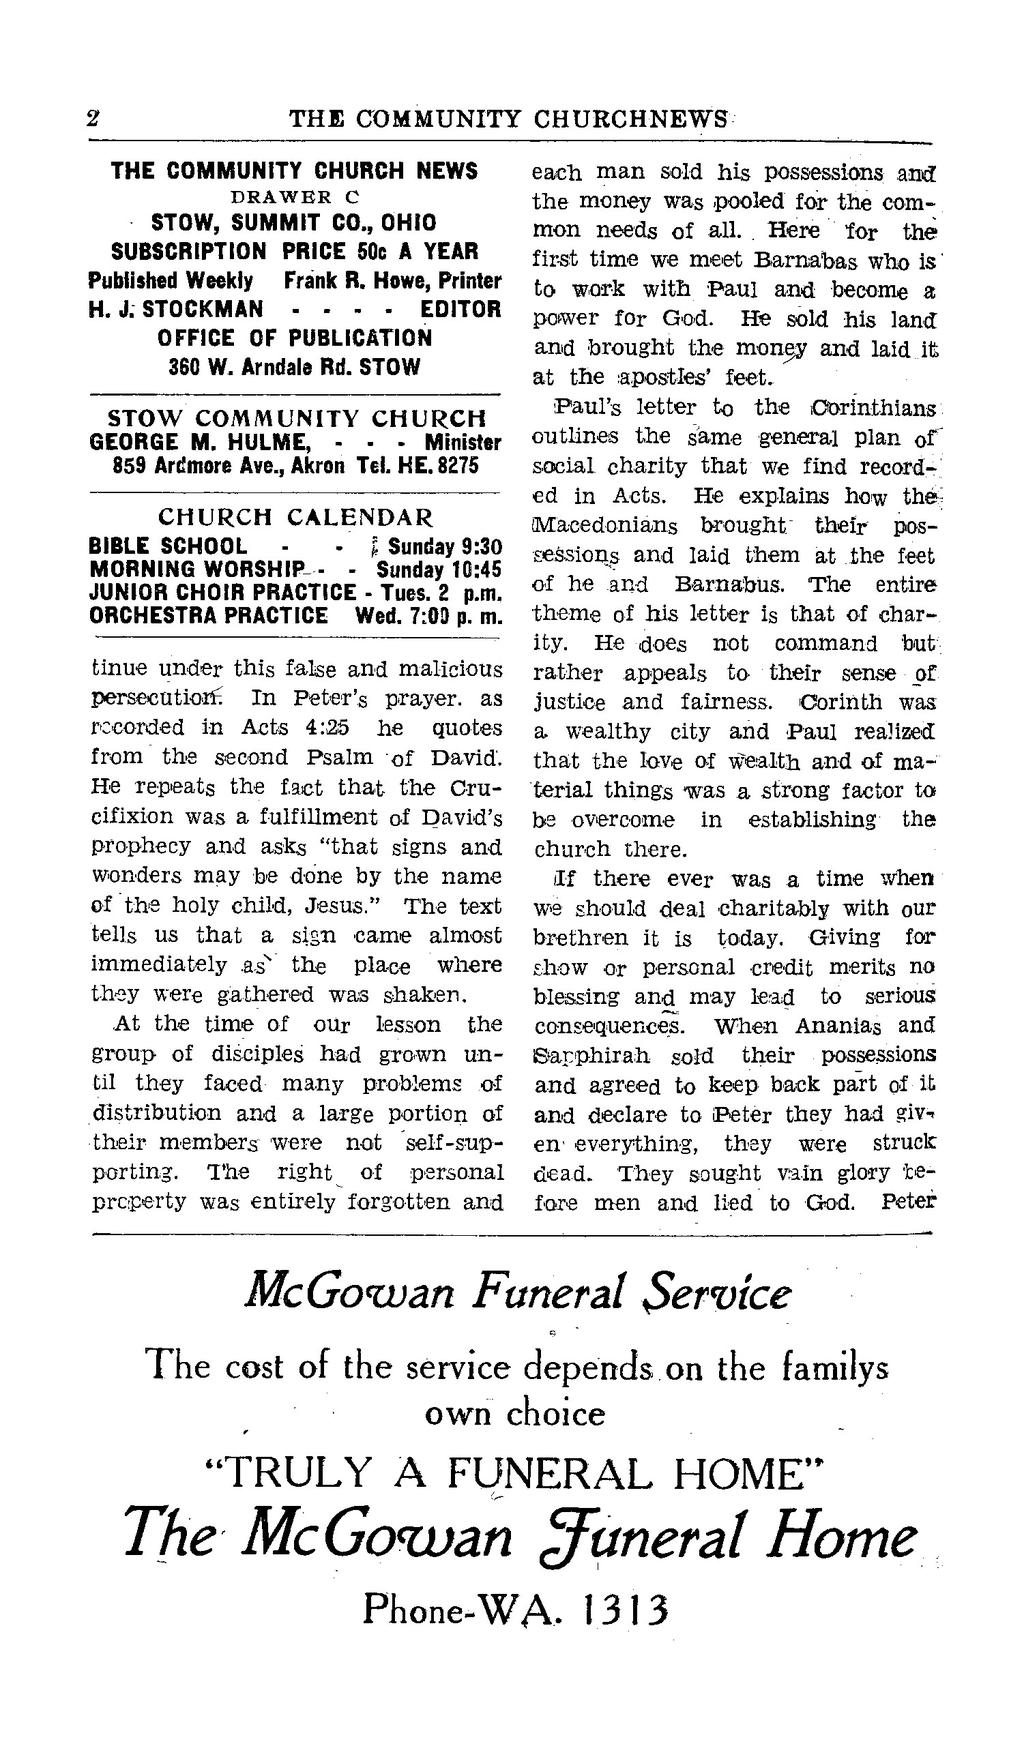 10> THE COMMUNITY CHURCH NEWS THE COMMUNITY CHURCH NEWS DRAWER C STOW, SUMMIT CO., OHIO SUBSCRIPTION PRICE 50c A YEAR Published Weekly Frank R. Howe, Printer H.J.